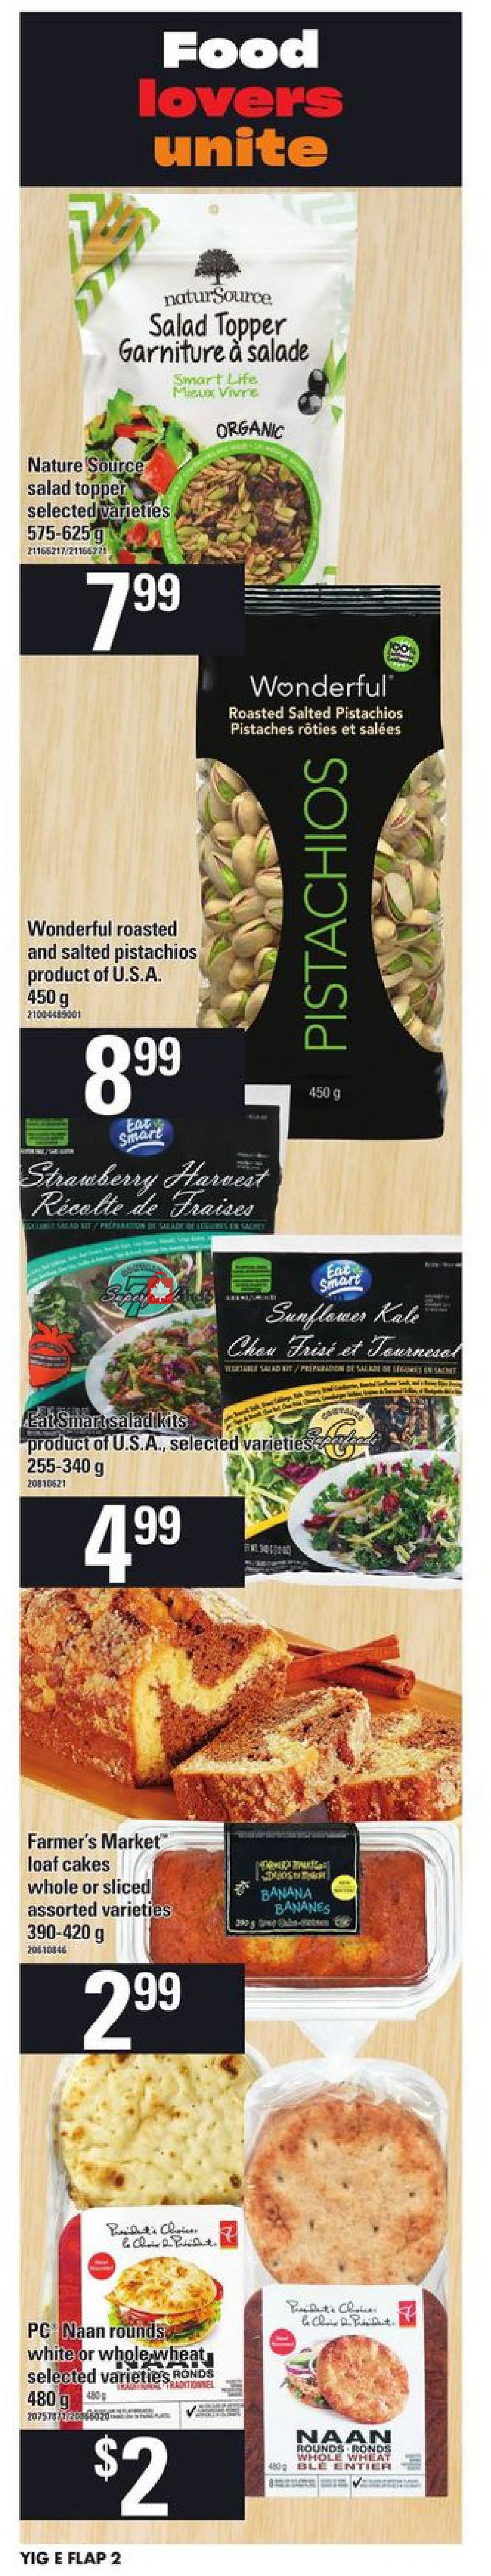 Flyer Your Independent Grocer Canada - from Thursday July 11, 2019 to Wednesday July 17, 2019